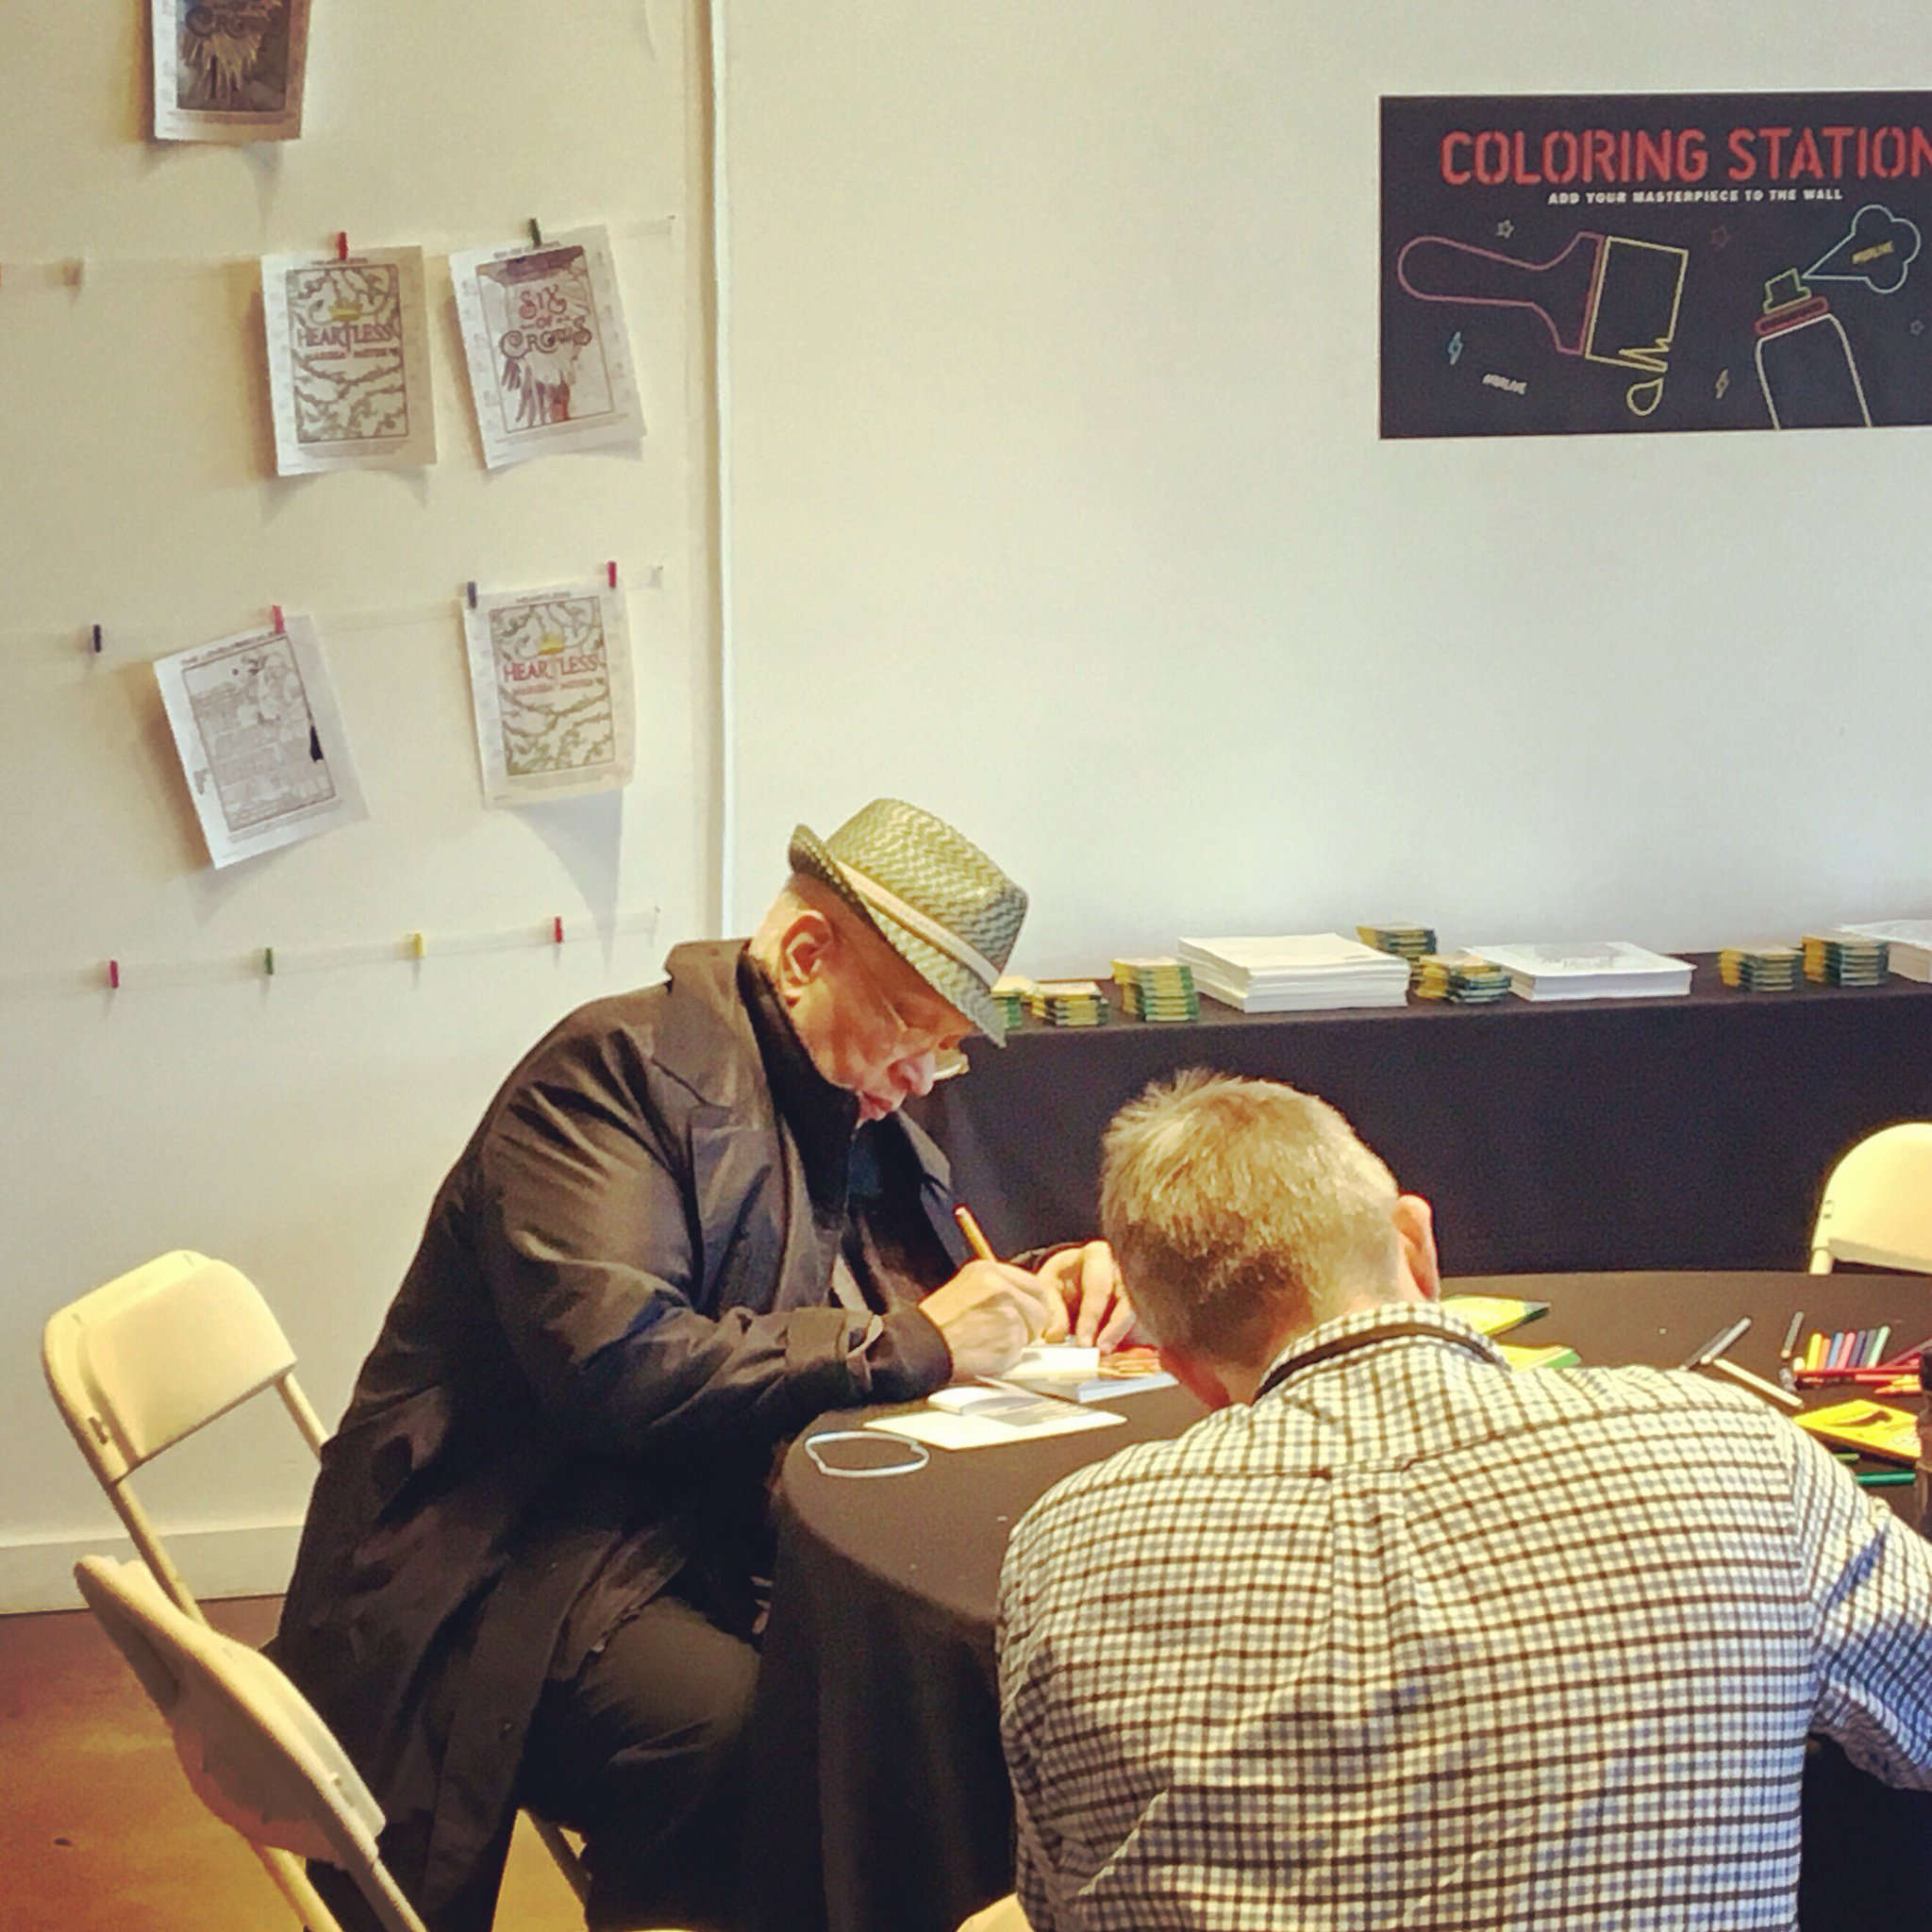 When Walter Mosley hits up the coloring station at #BRLIVE: https://t.co/jMyLNEPTvL